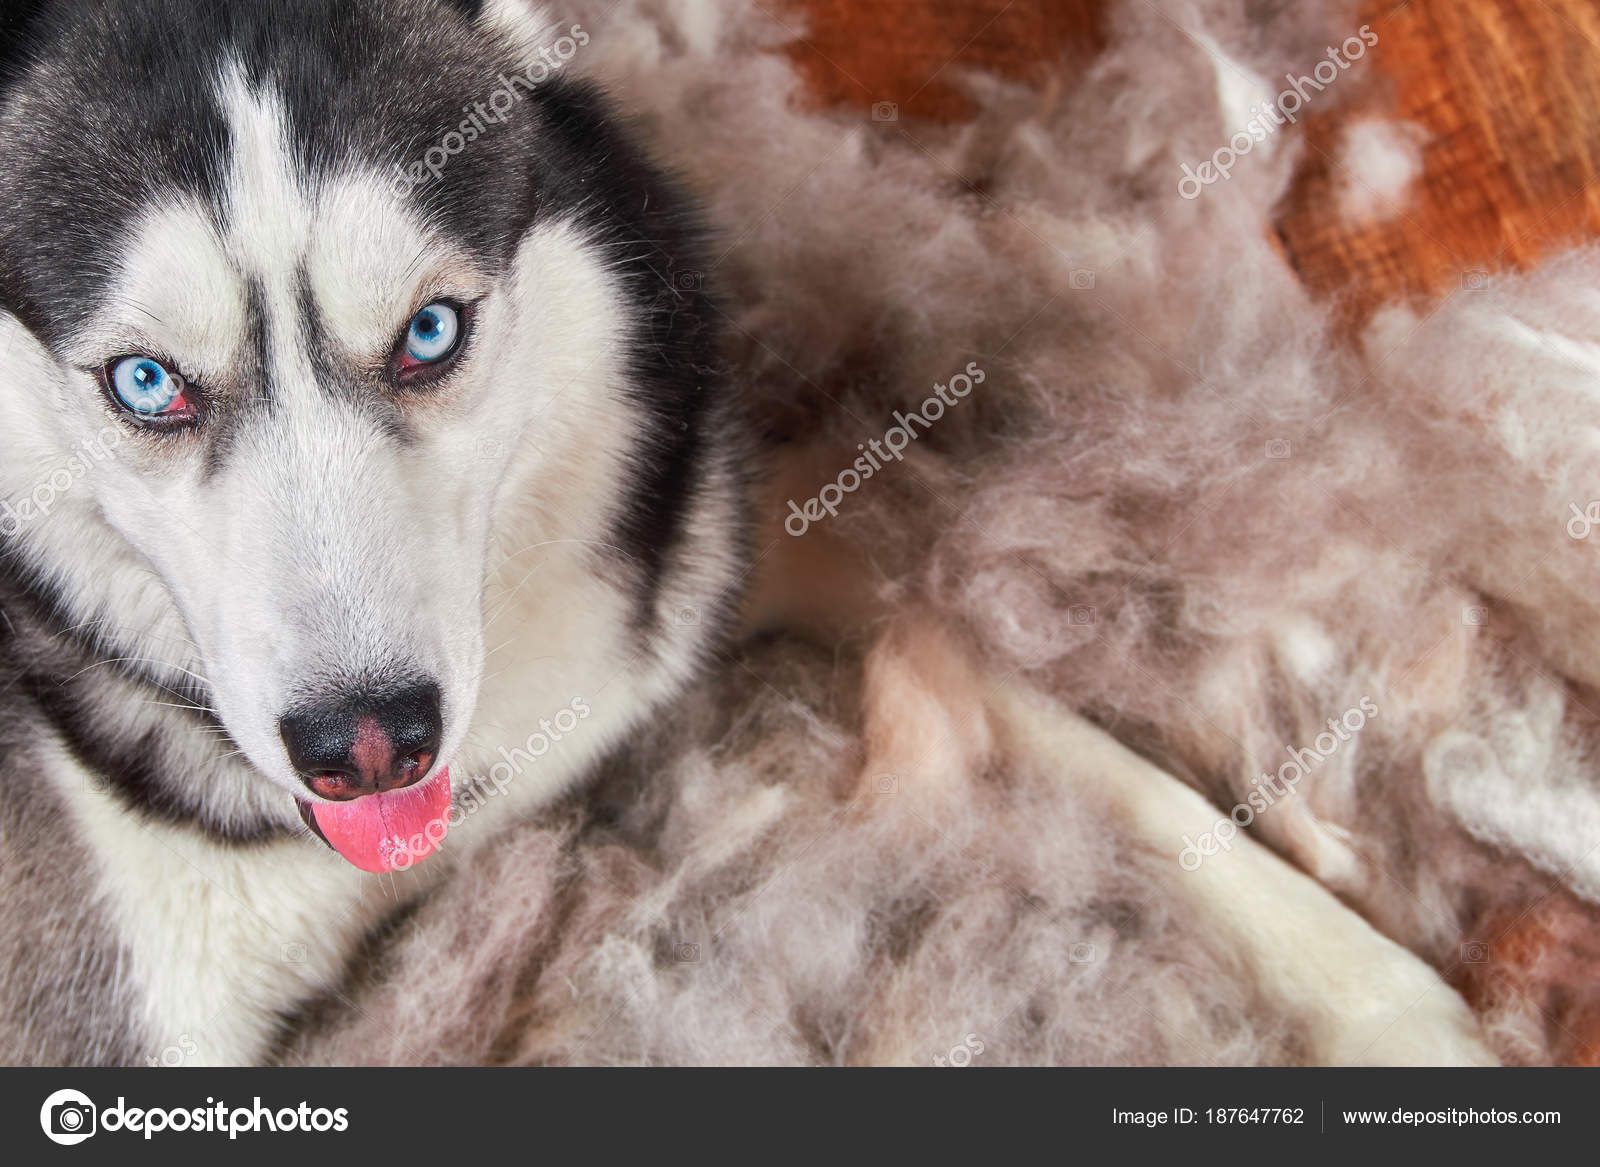 Concept Annual Molt Coat Shedding Moulting Dogs Siberian Husky